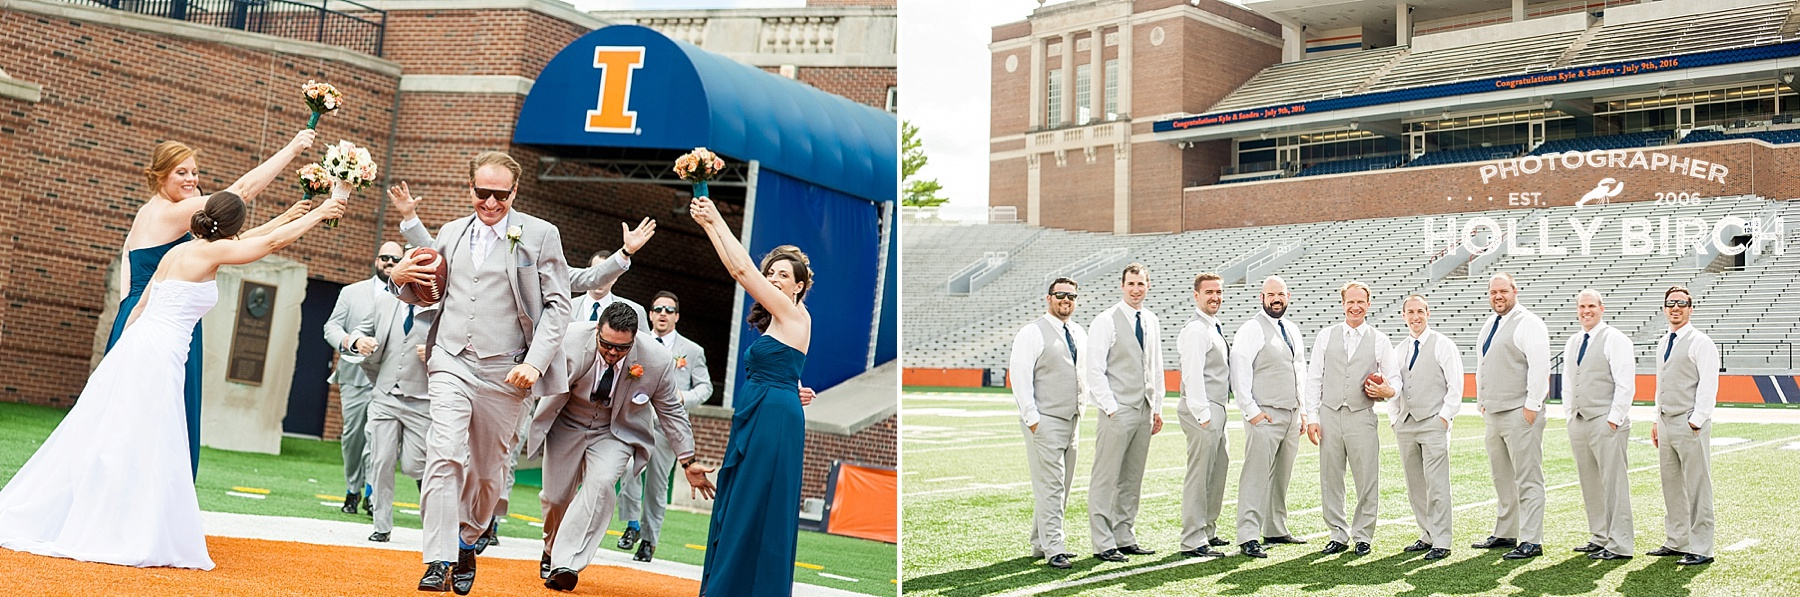 fun times with wedding party on football field